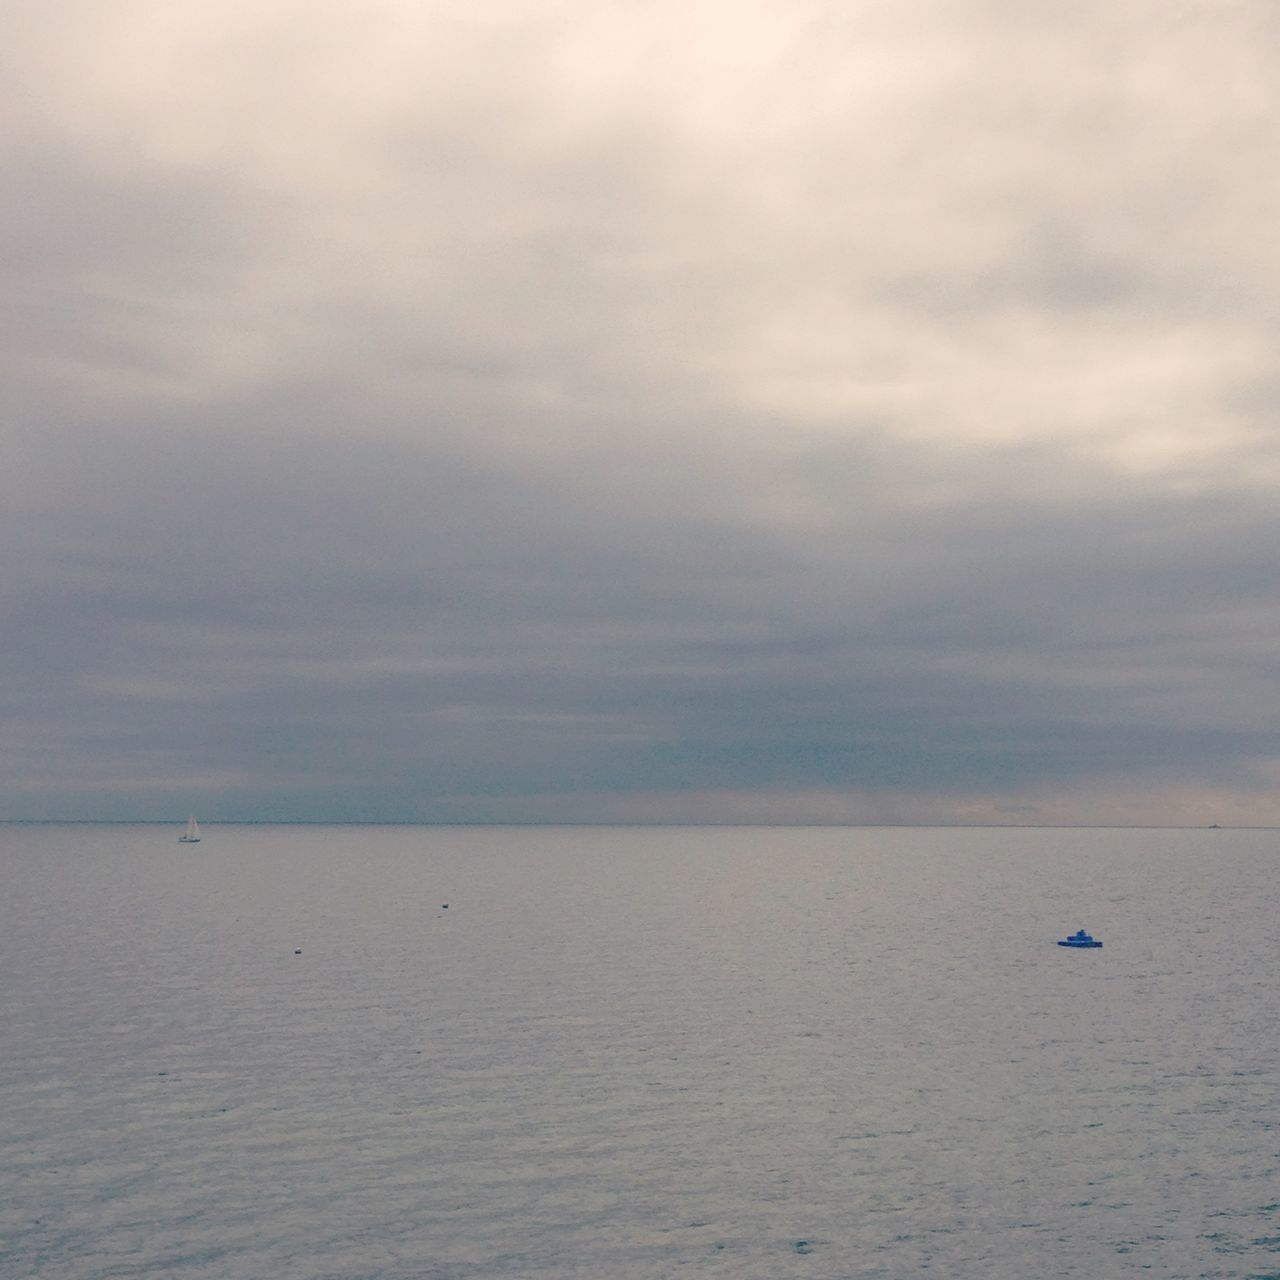 sea, cloud - sky, sky, water, horizon over water, scenics, nature, tranquility, tranquil scene, beauty in nature, nautical vessel, outdoors, no people, day, beach, transportation, vacations